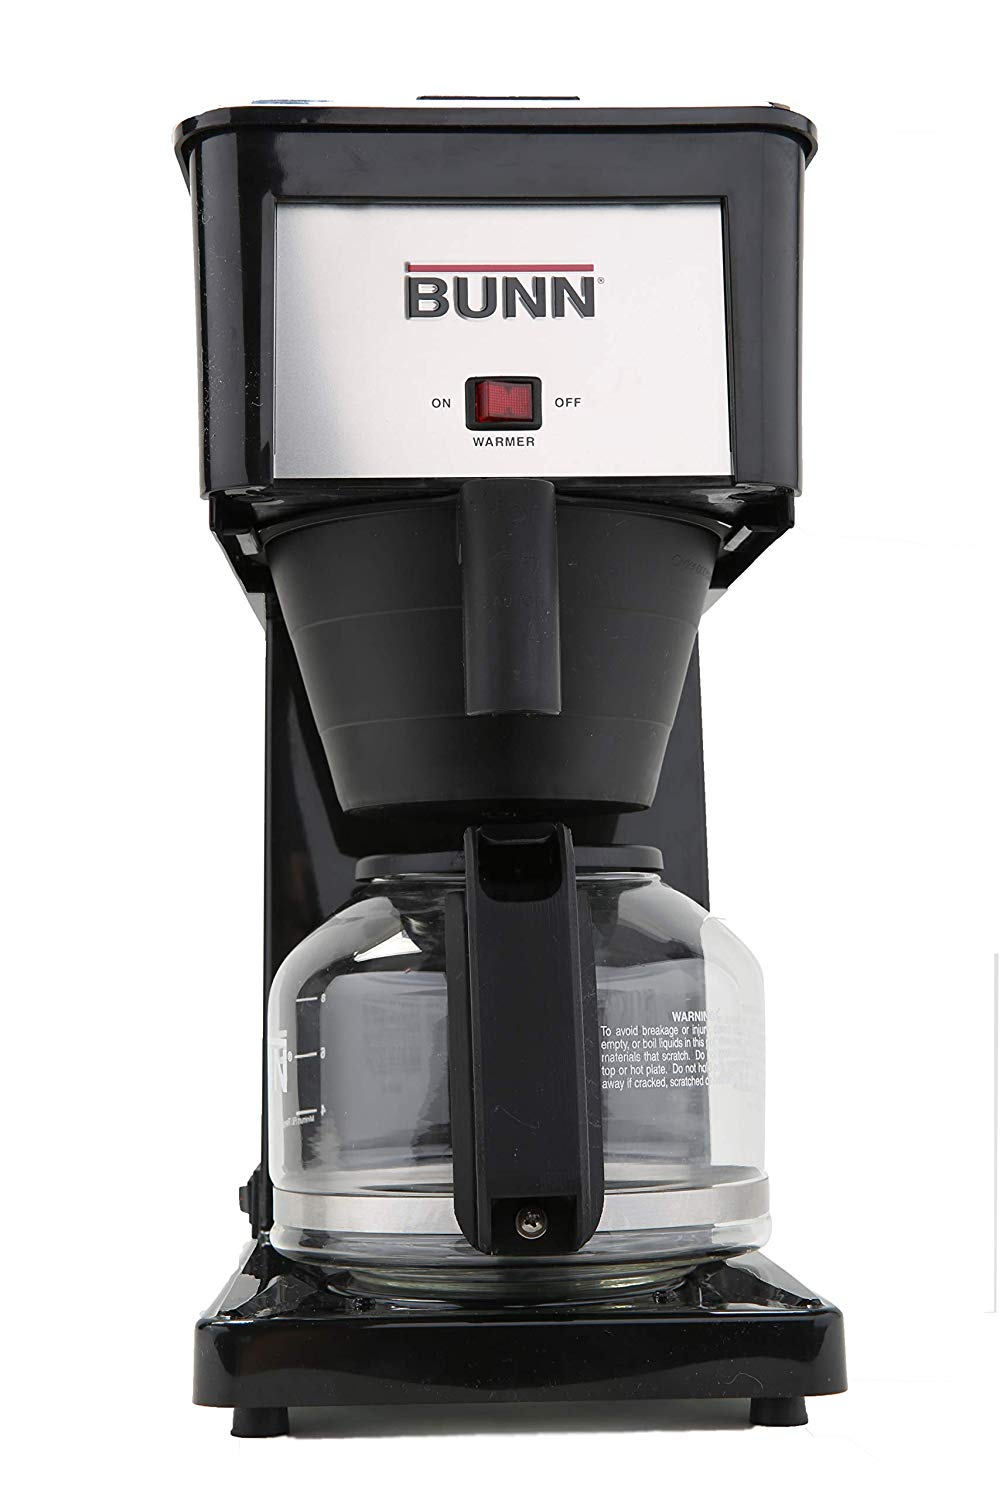 Bunn-Drip-Coffee-Maker-12-Cup